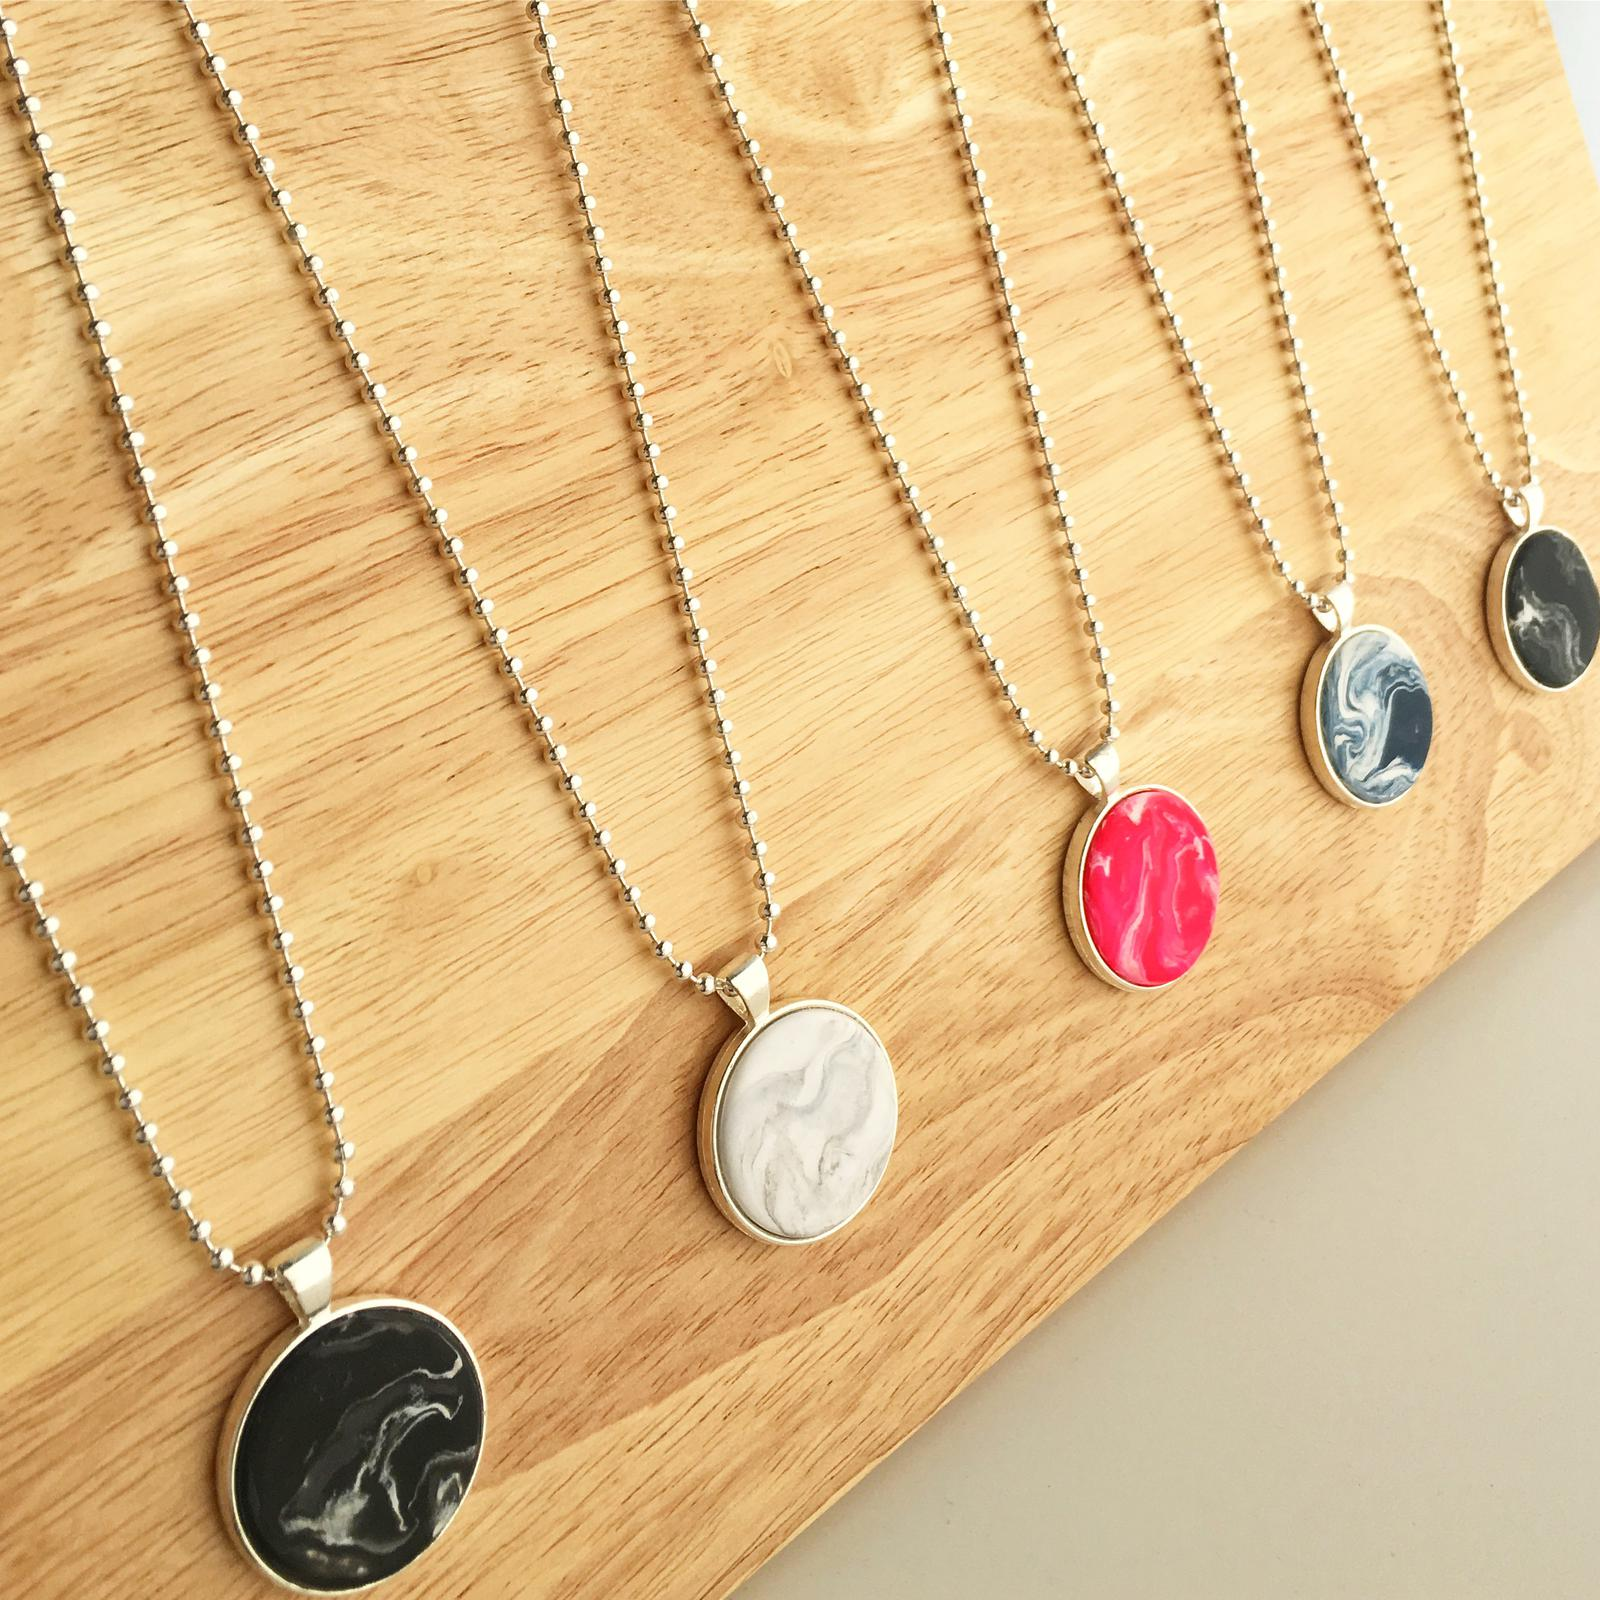 Polymer Clay Pendant Necklaces